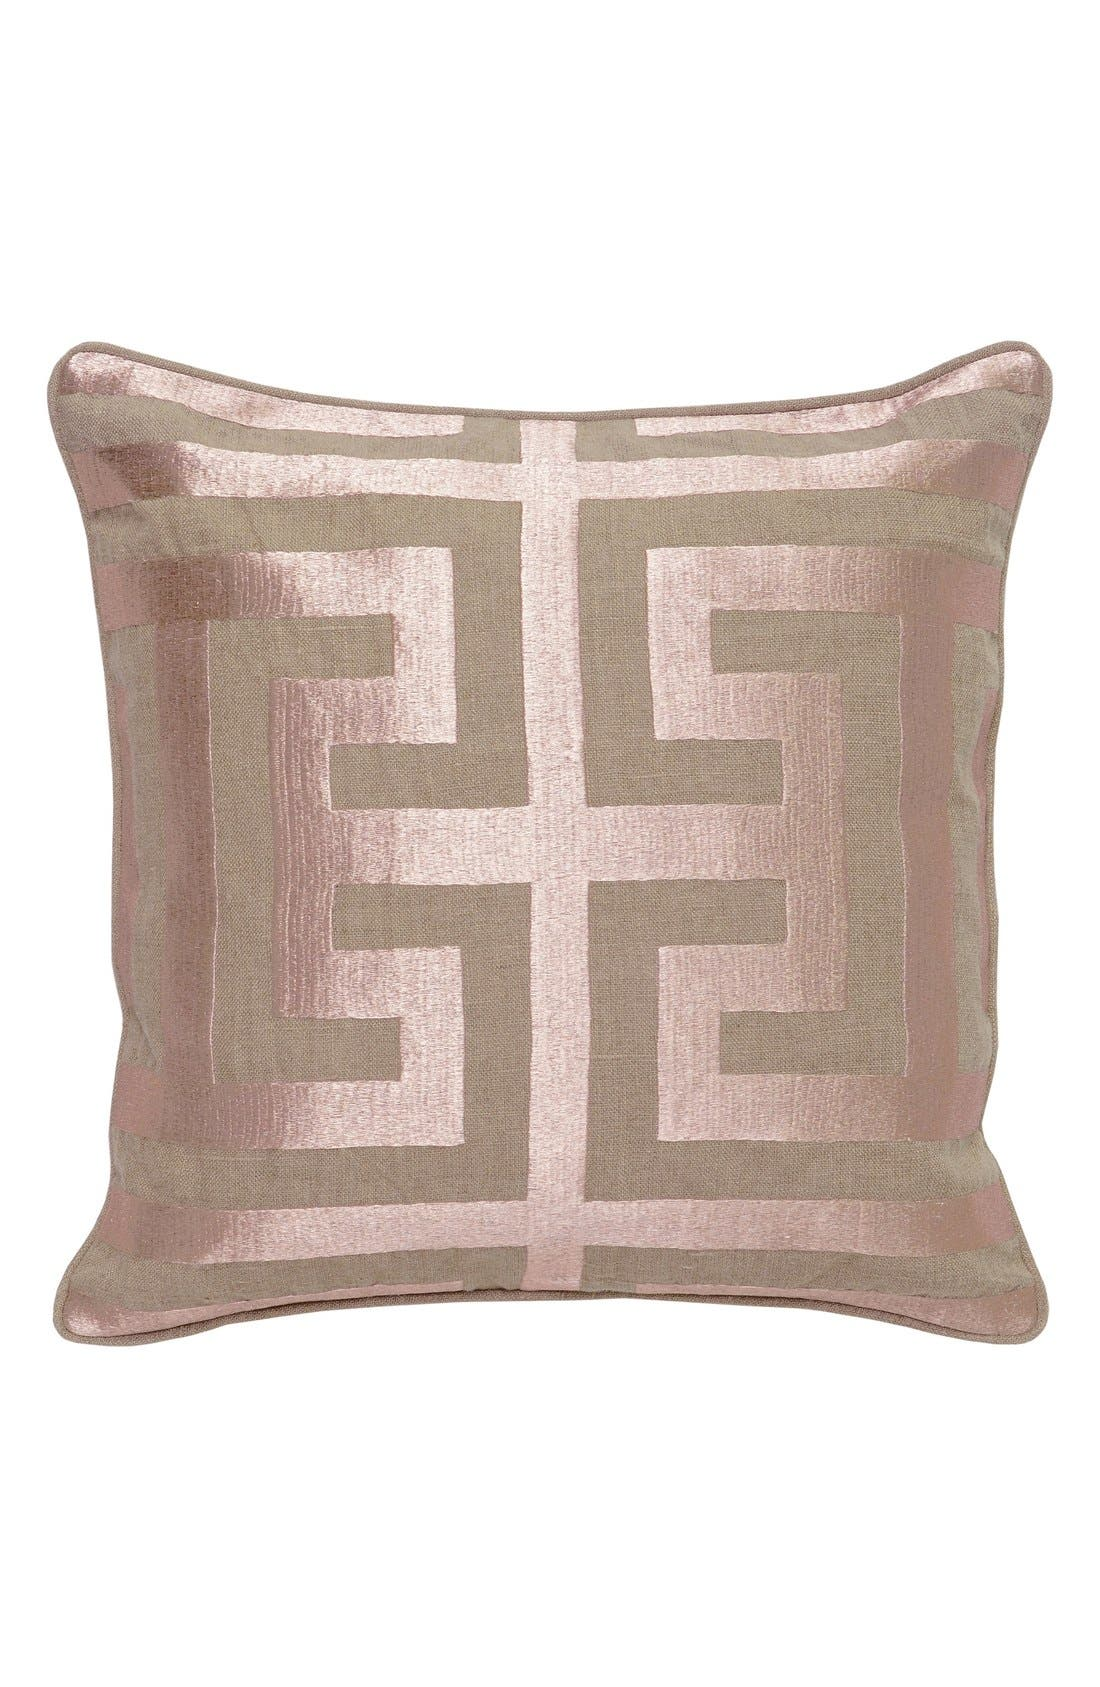 Main Image - Villa Home Collection 'Capital' Decorative Pillow